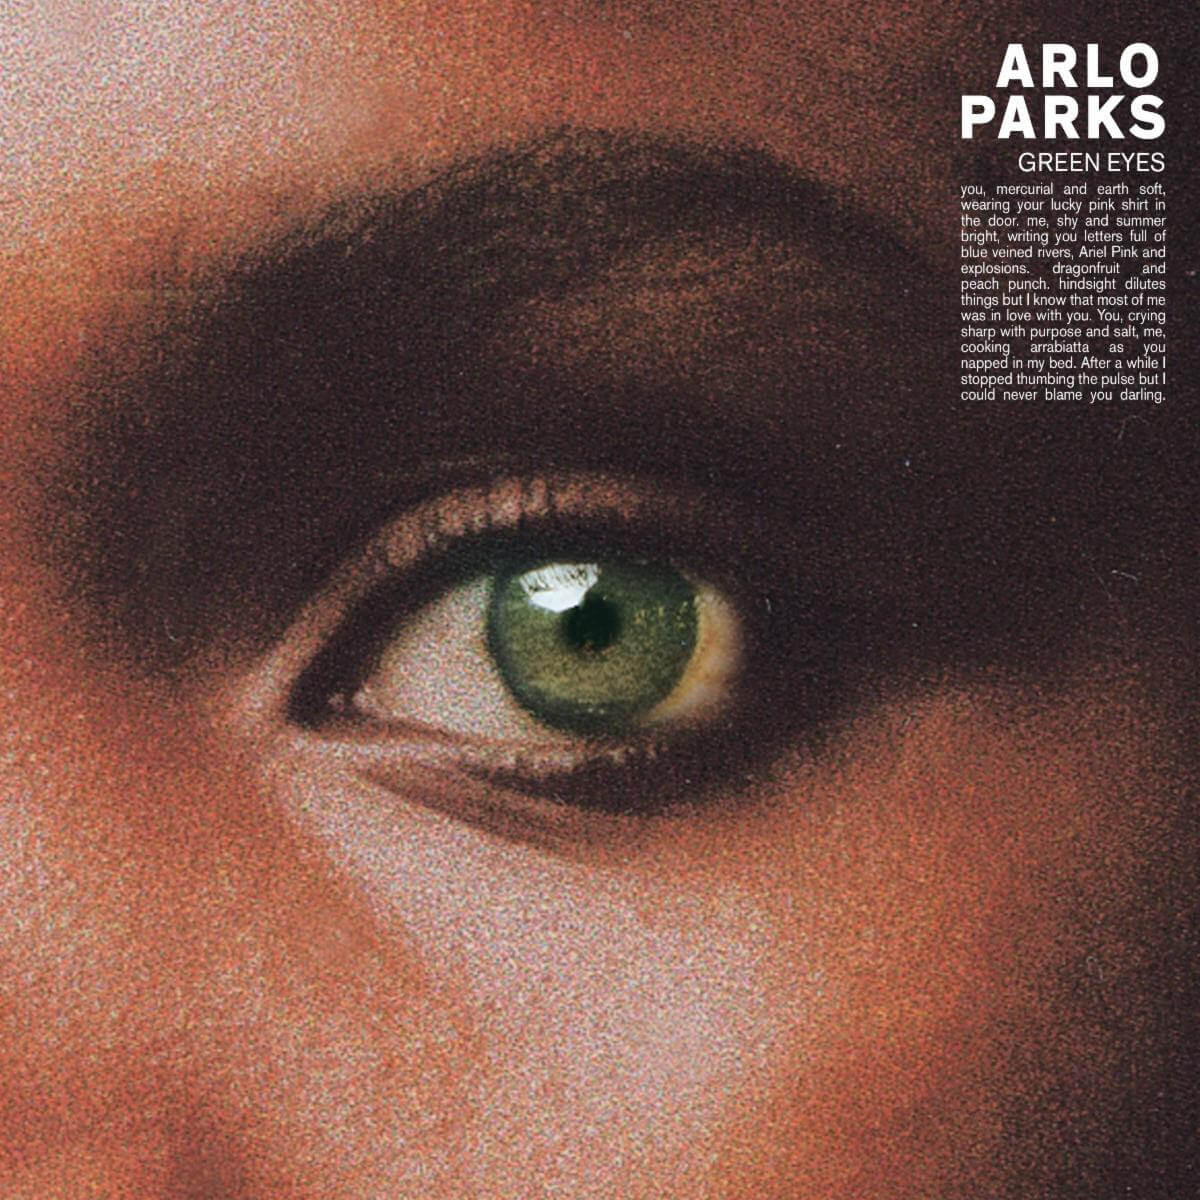 """Arlo Parks announces debut album Collapsed In Sunbeams, shares new single """"Green Eyes."""" The LP comes out on January 29th via Transgressive"""